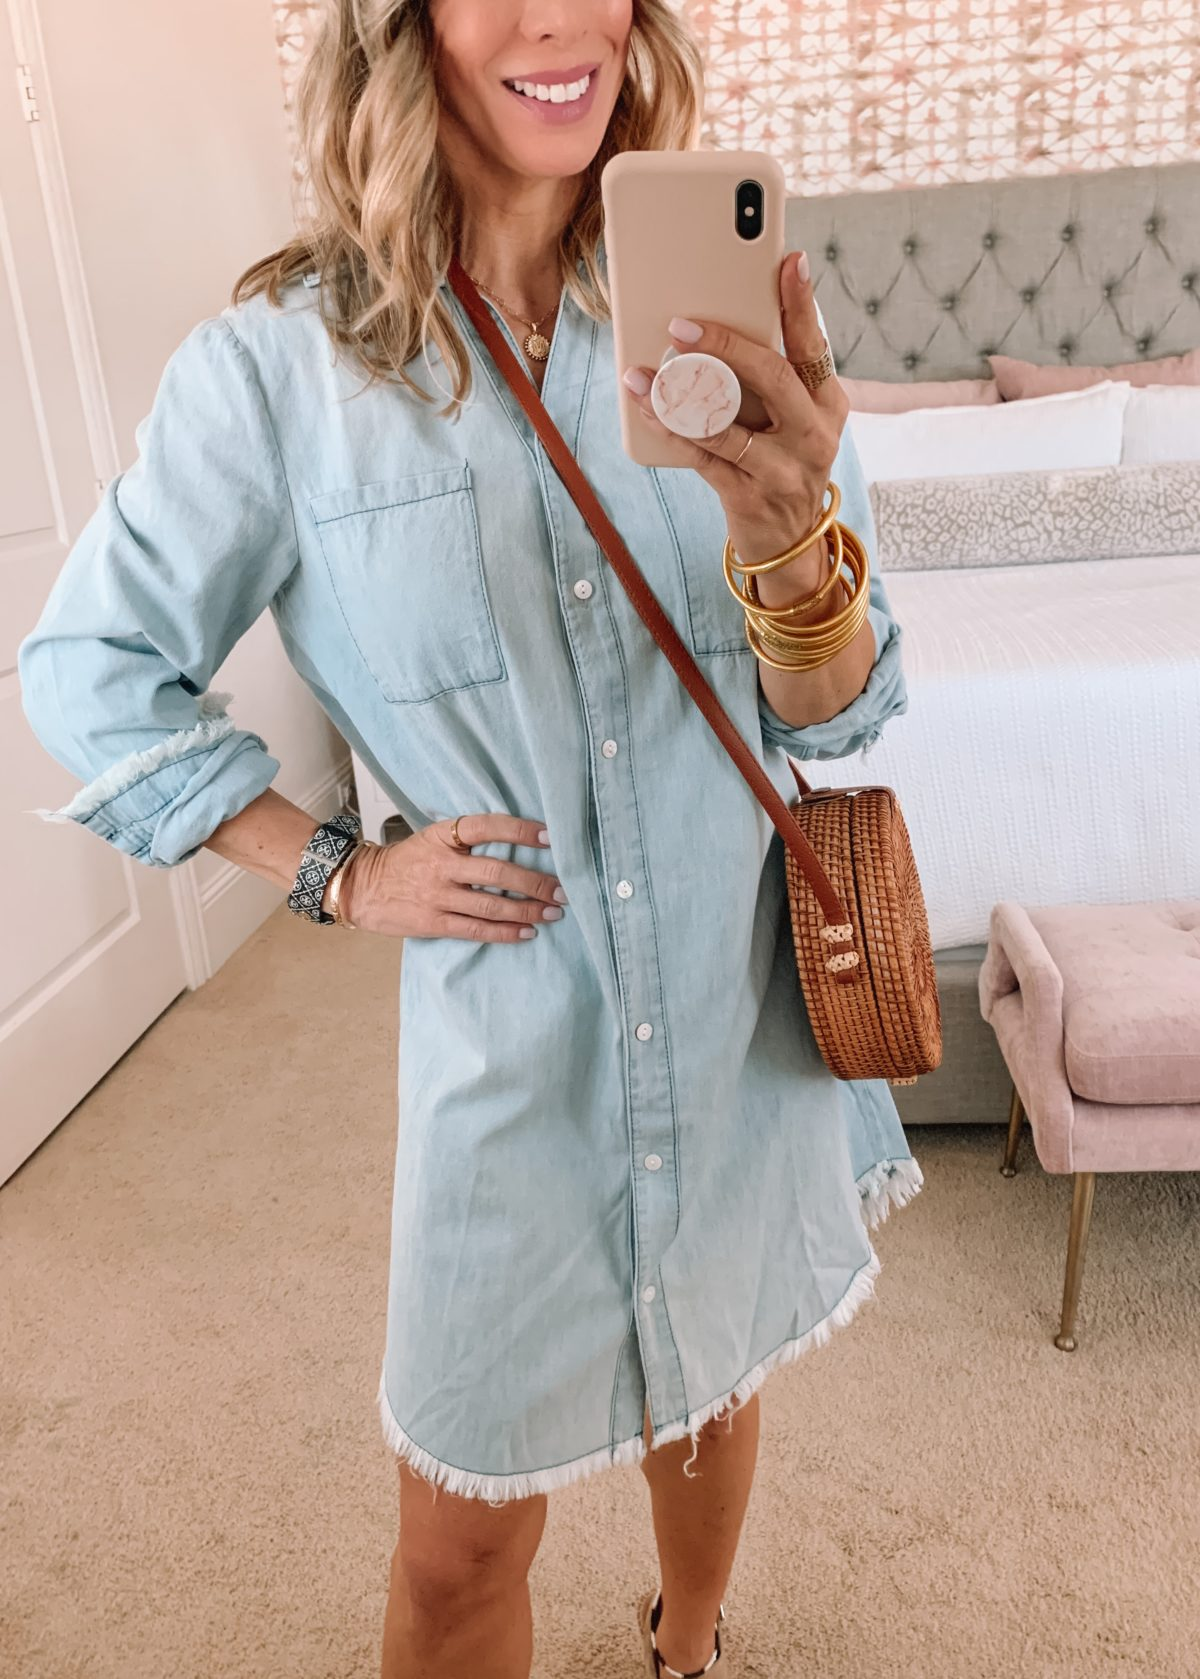 Amazon Fashion Faves, Chambray Dress and Wedges with Crossbody